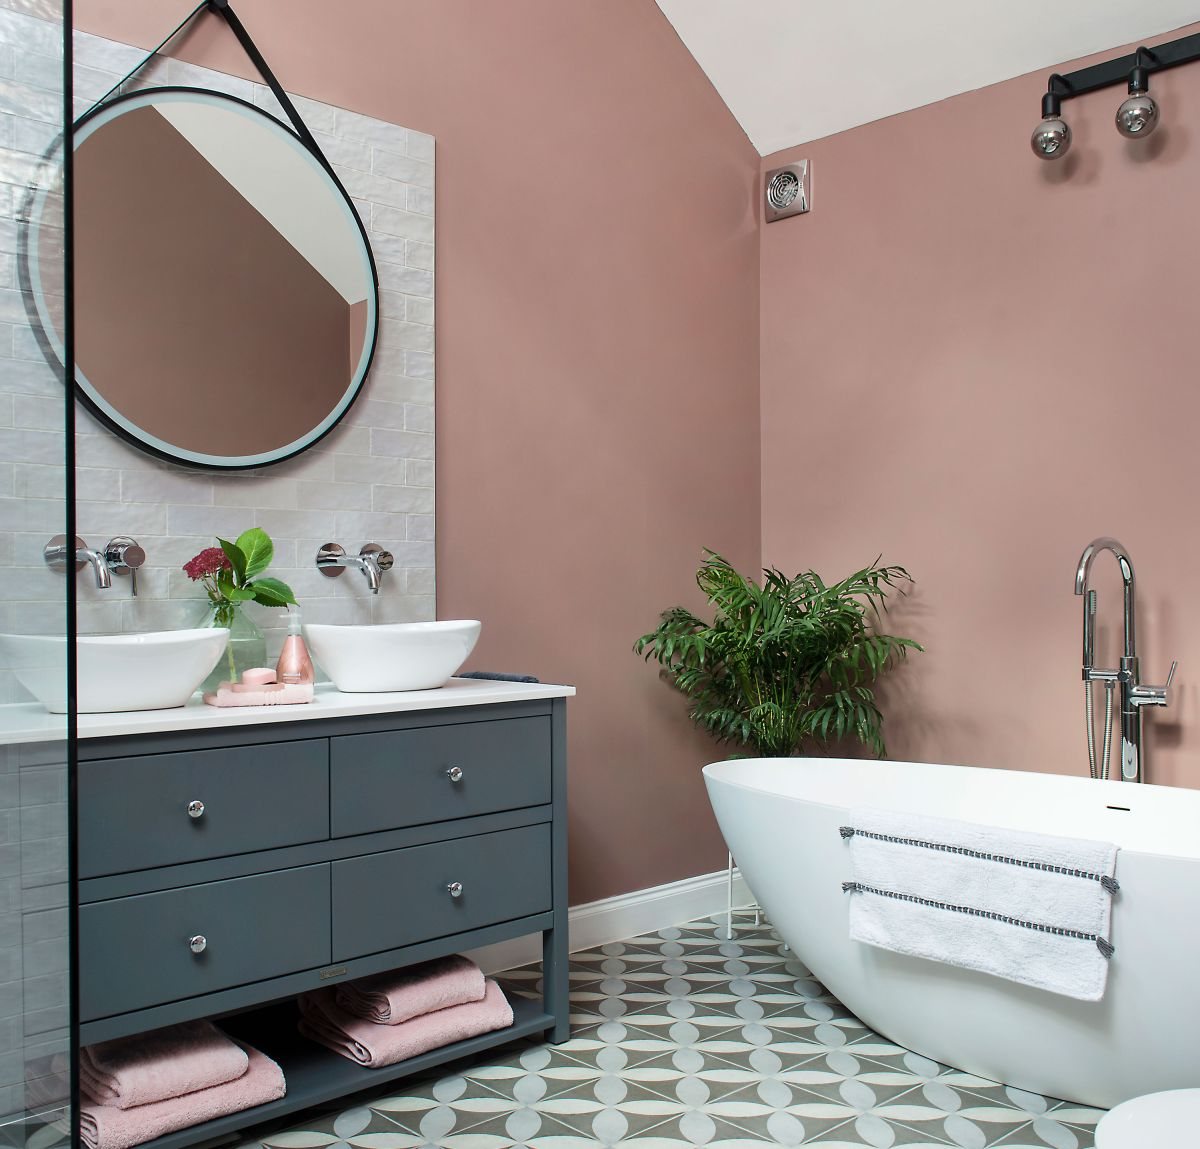 Room reshuffle makes space for the bathroom of dreams